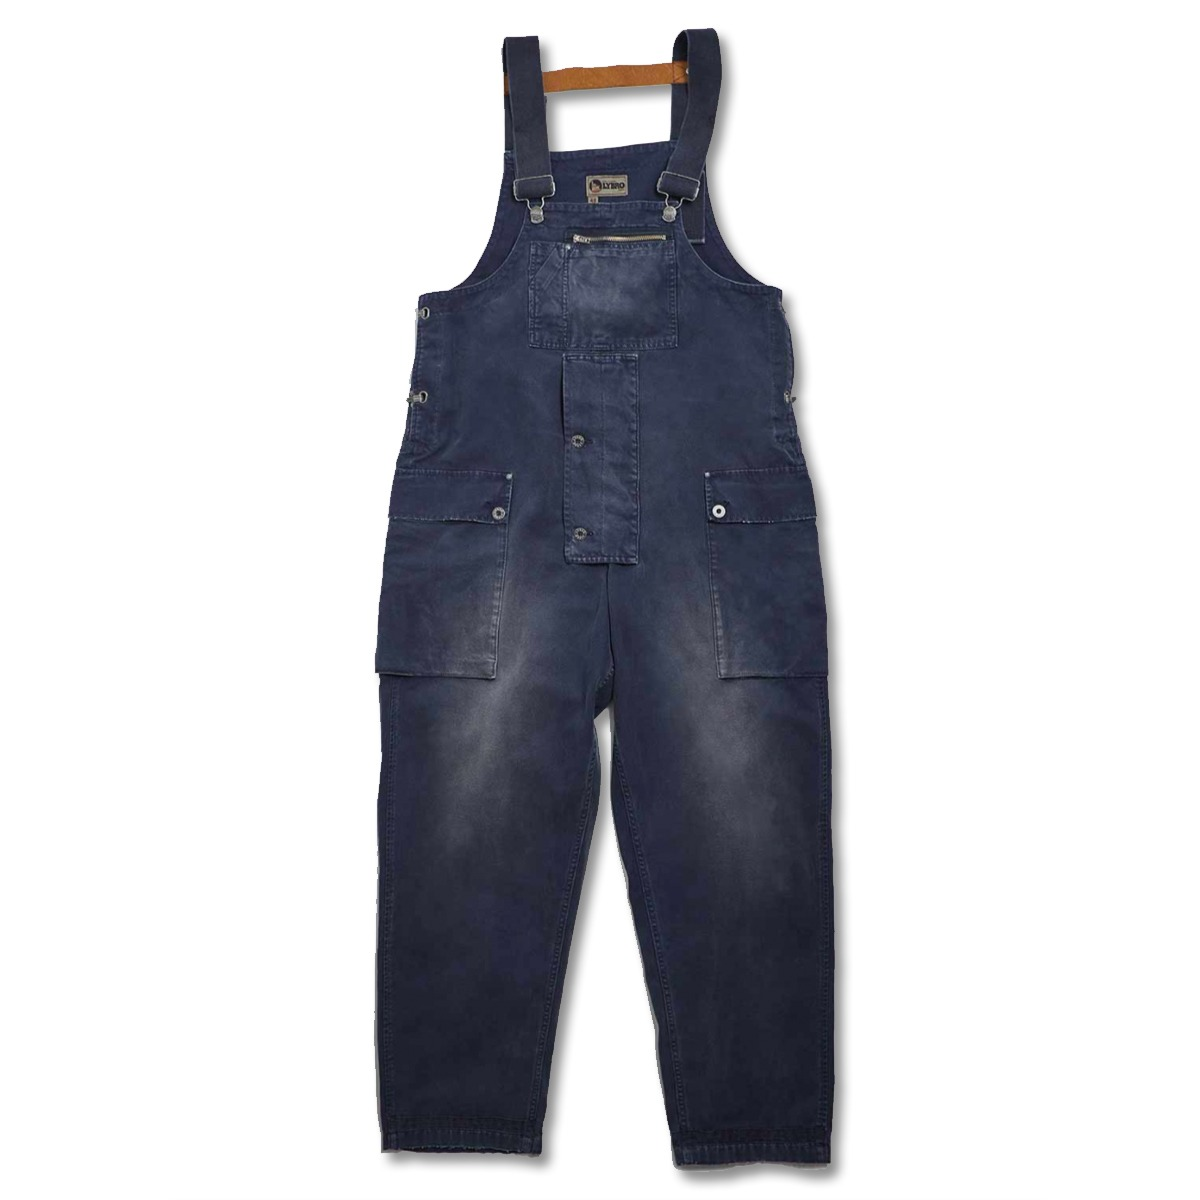 [NIGEL CABOURN] NAVAL DUNGAREE CANVAS 'NAVY'